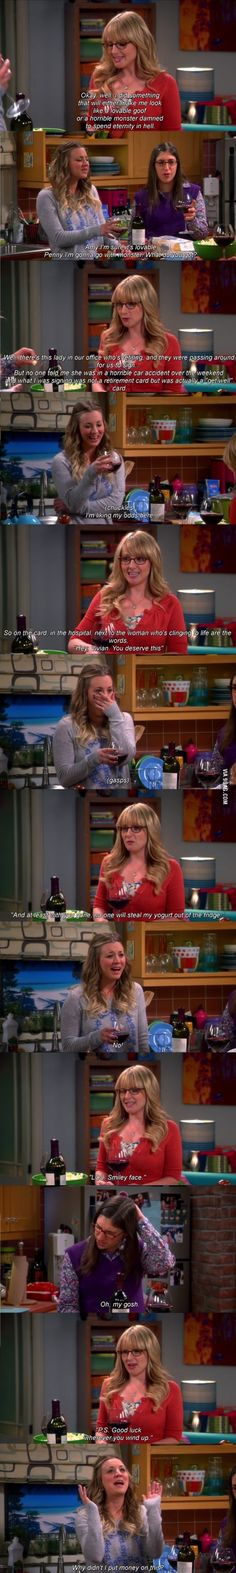 hahaha Bernadette- I love the Big Bang Theory!!